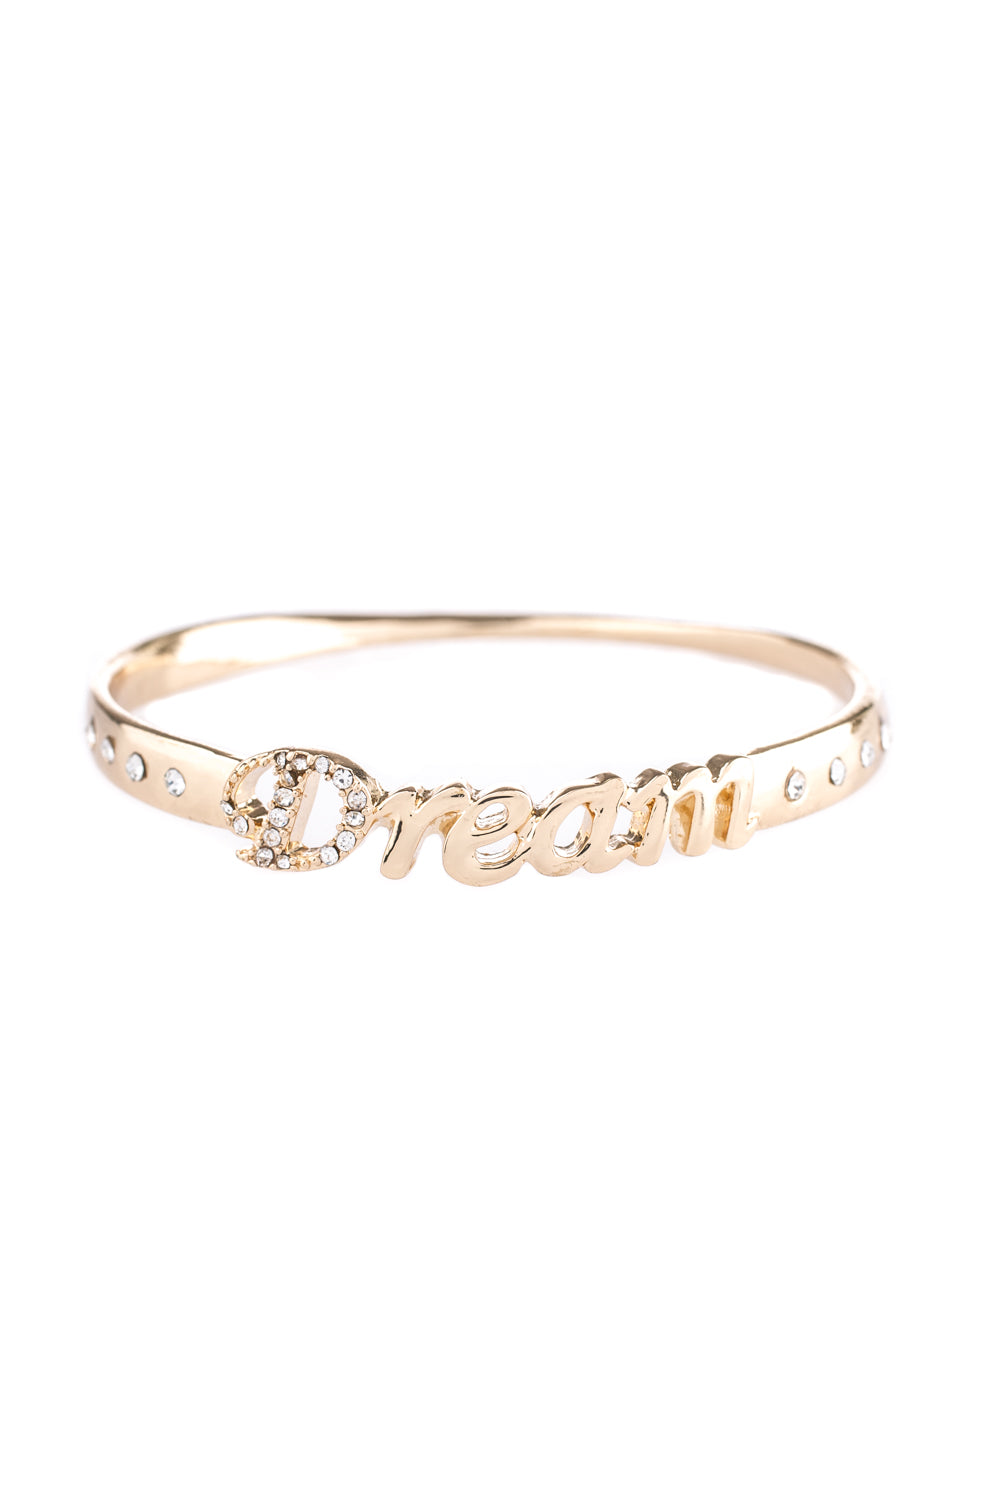 Type 1 Dream Bracelet